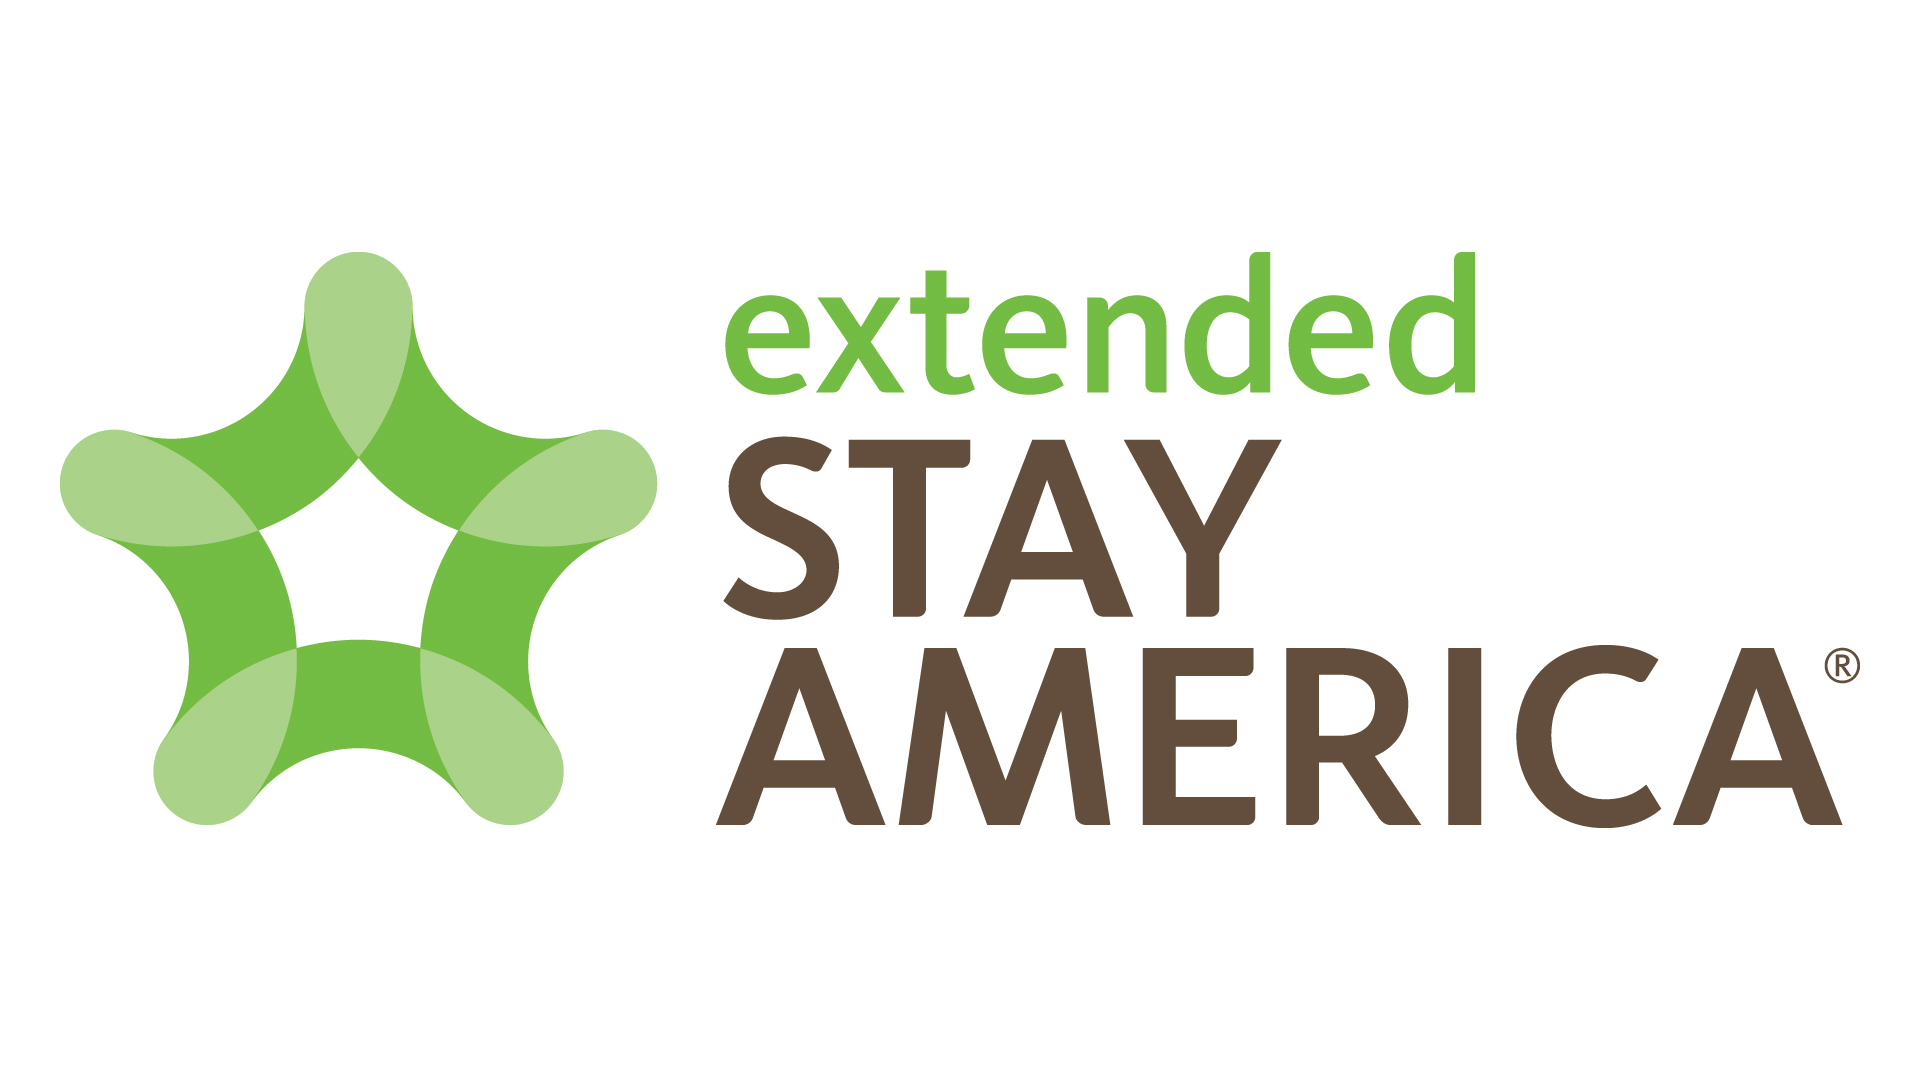 extended stay america celebrates kansas city with stay. Black Bedroom Furniture Sets. Home Design Ideas